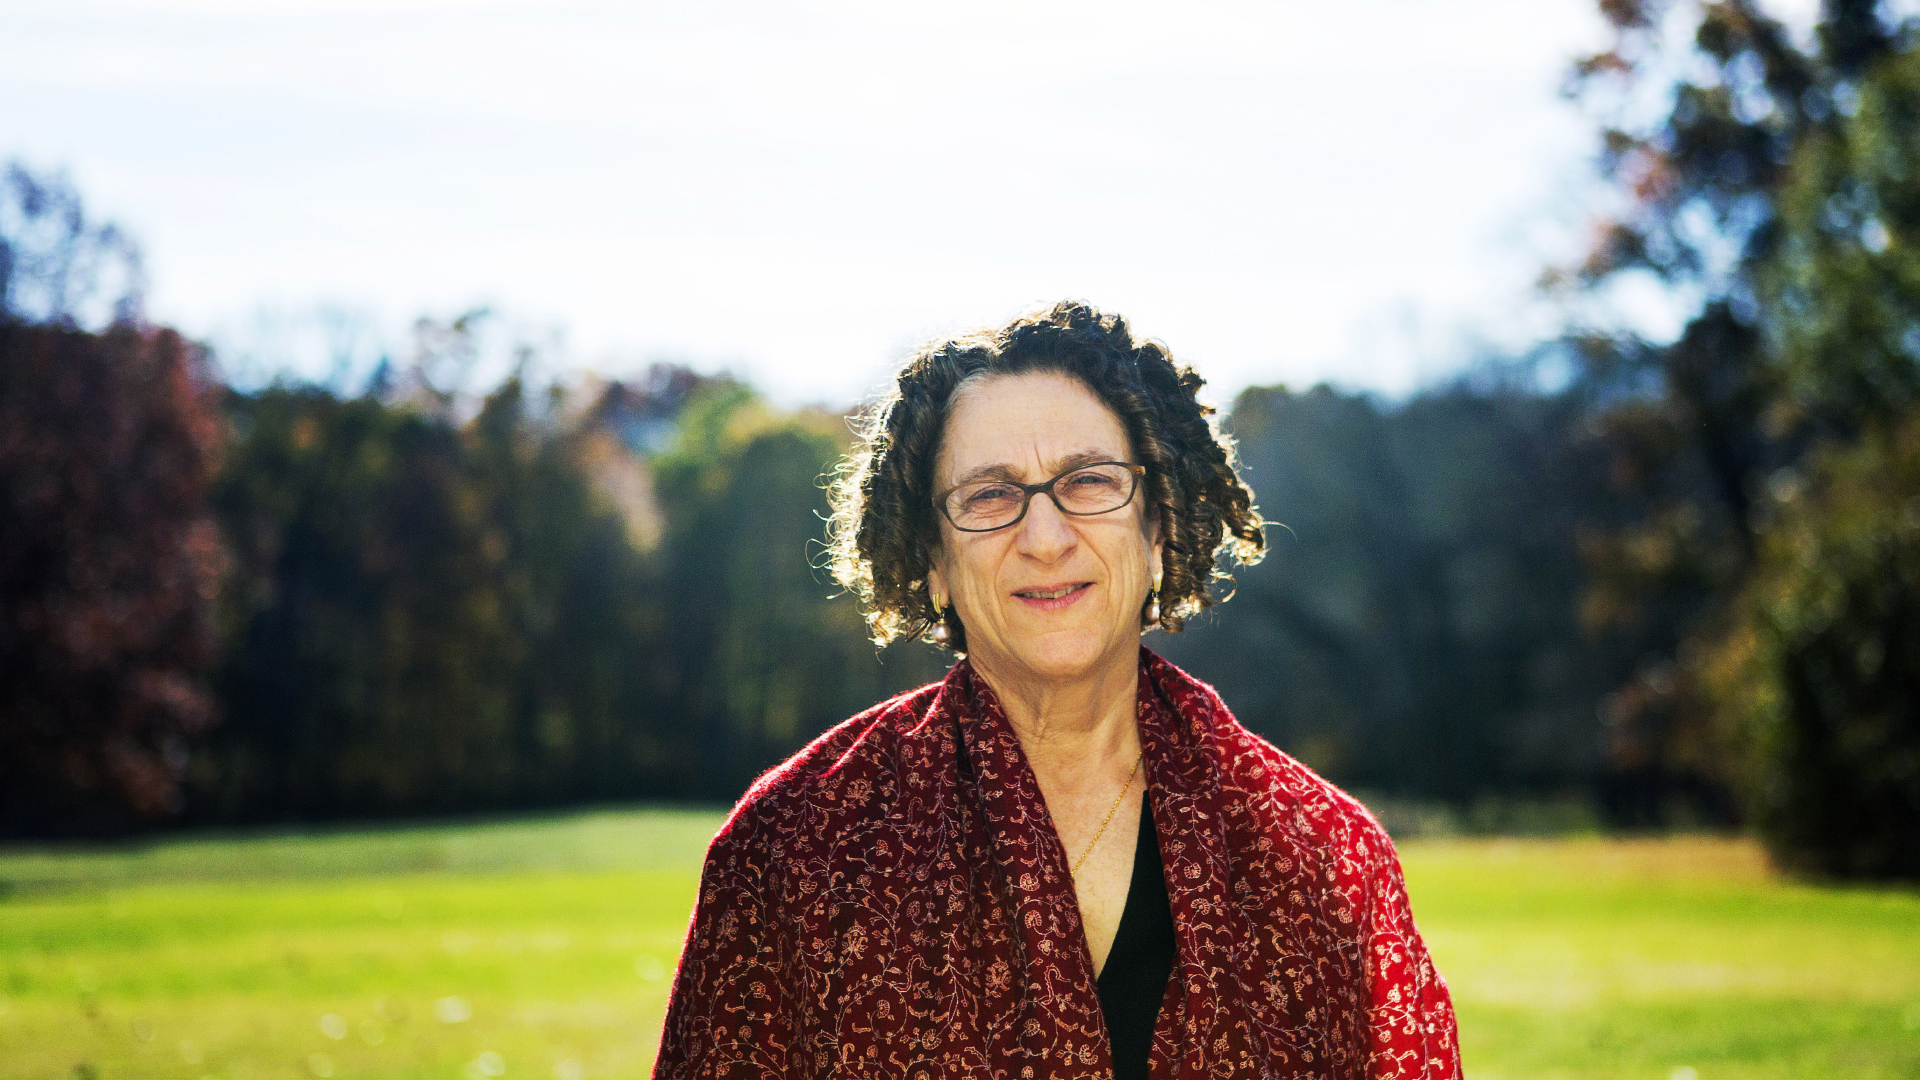 The computer scientist Cynthia Dwork takes abstract concepts like privacy and fairness and adapts them into machine code for the algorithmic age.